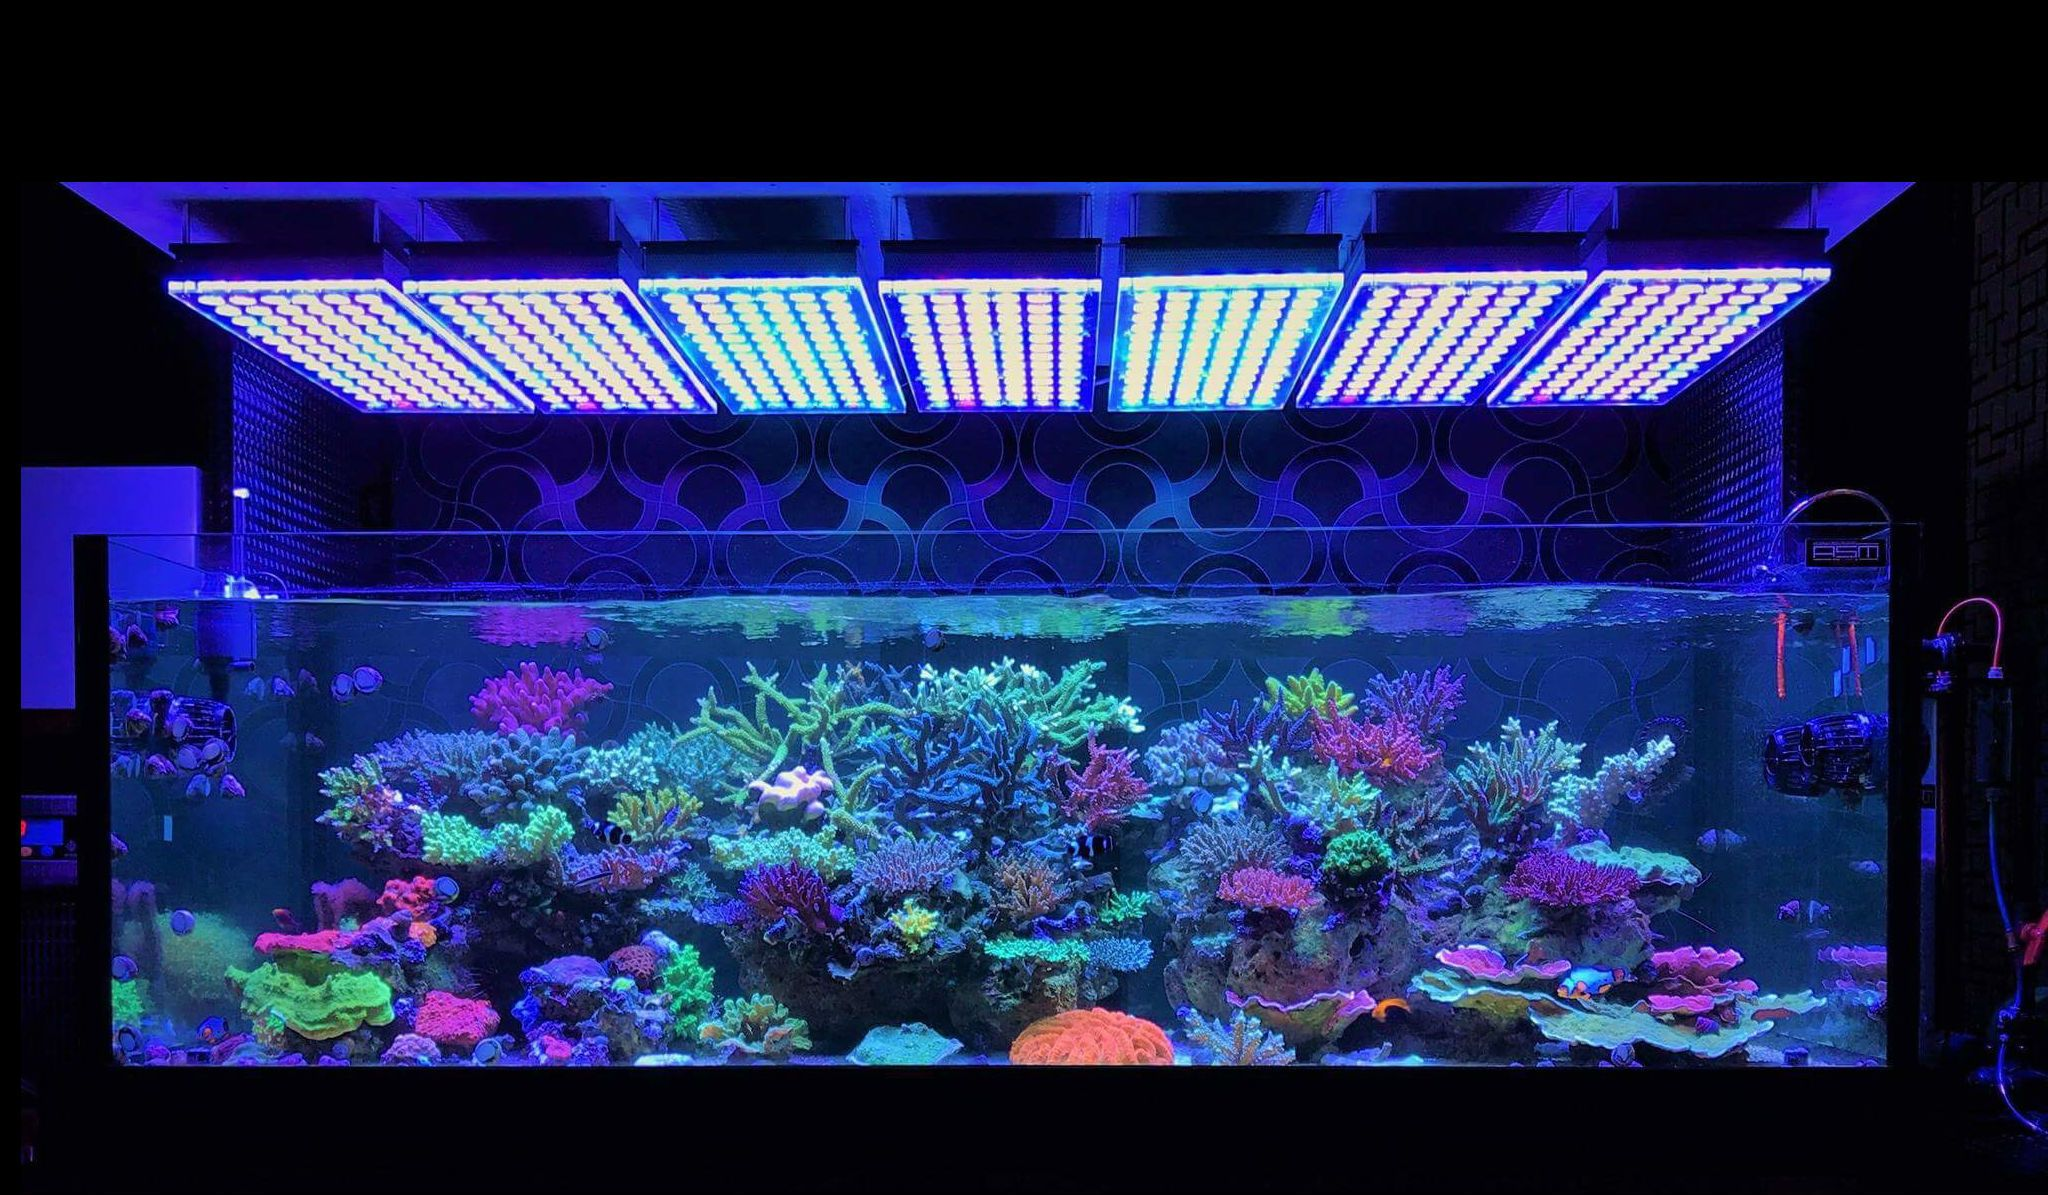 Nano Zee Aquarium Verlichting Atlantik V4 Reef Aquarium Led Lighting Orphek Aquarium